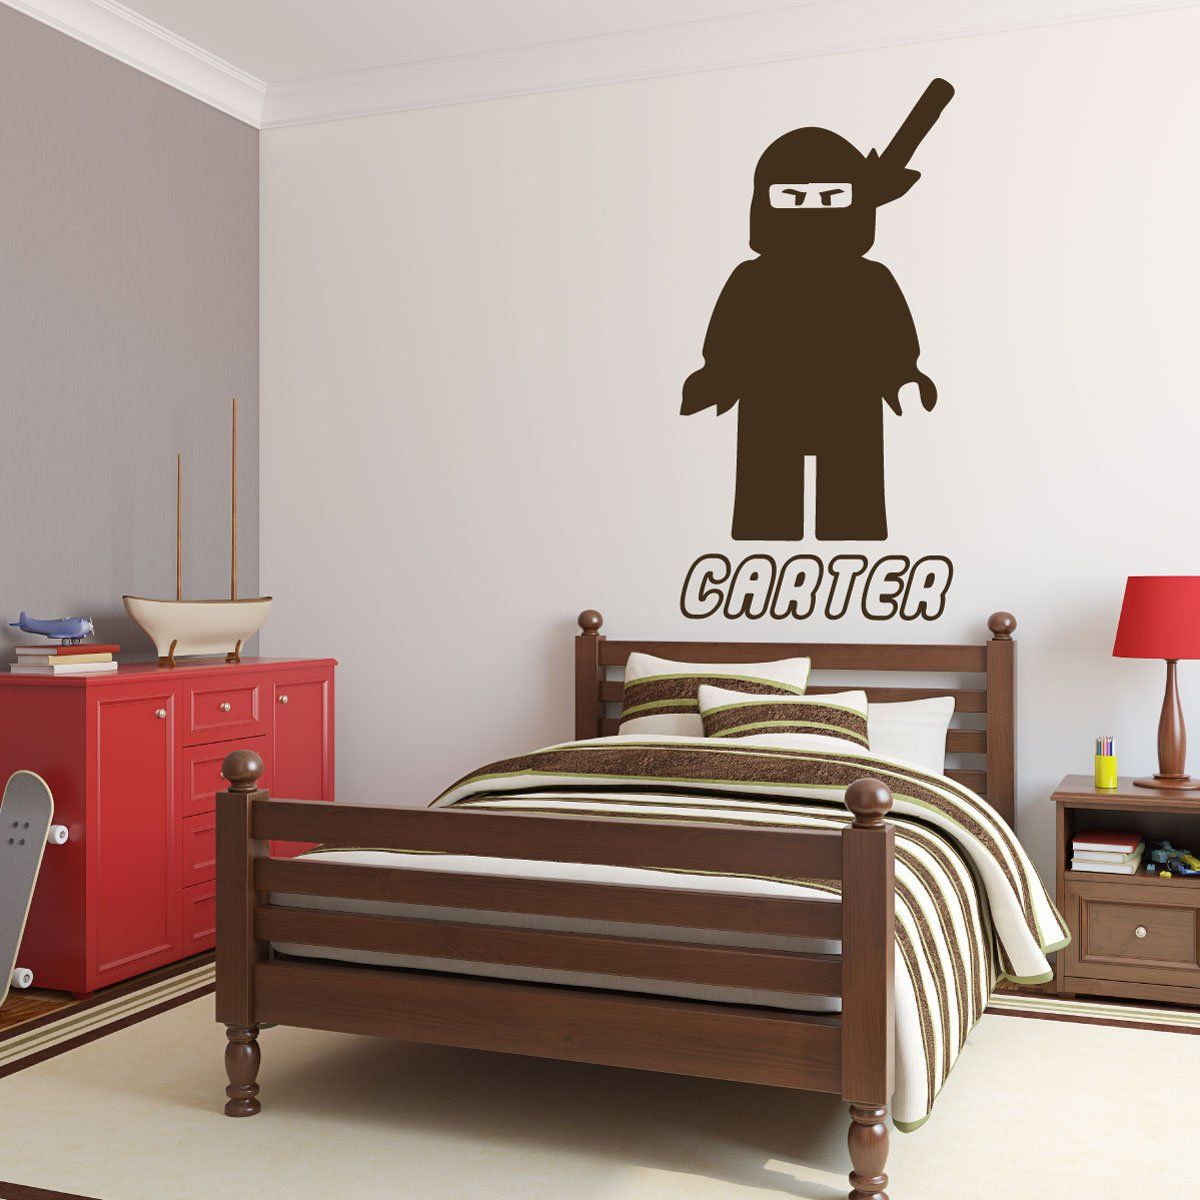 Personalized Wall Decals - Lego Ninjago Samurai with Name Below ...